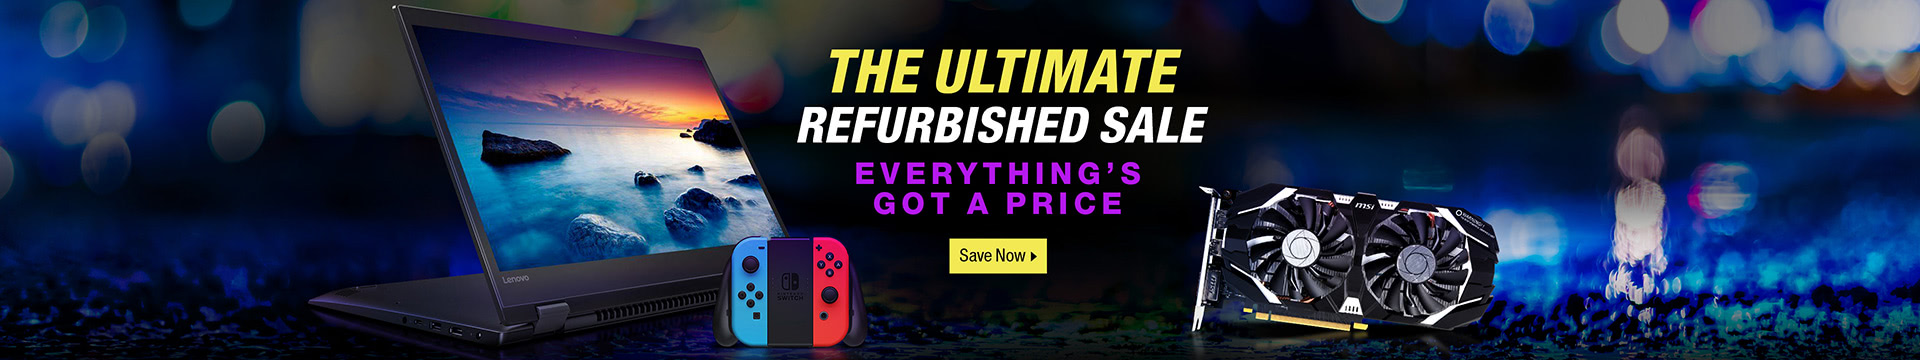 THE ULTIMATE REGURBISHED SALE